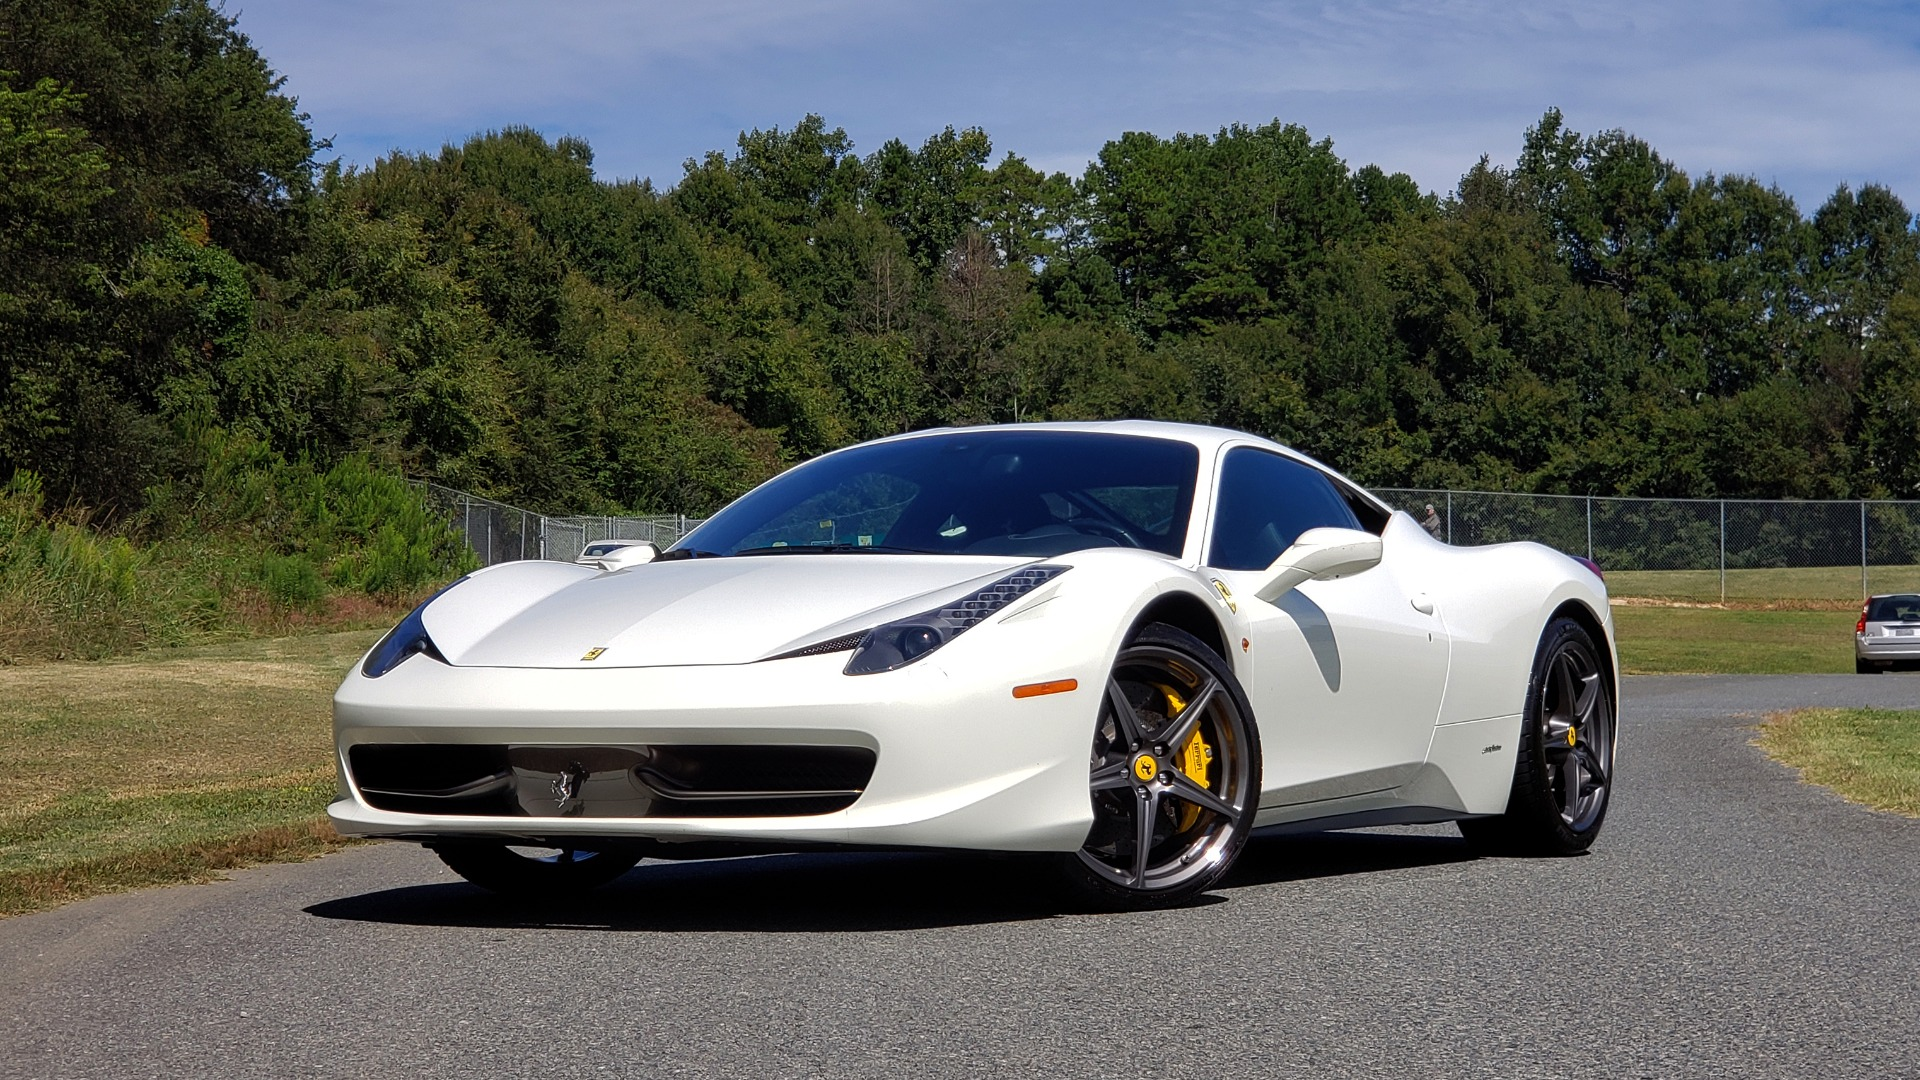 Used 2012 Ferrari 458 ITALIA COUPE / 4.5L V8 / 7-SPEED AUTO / LOW MILES SUPER CLEAN for sale $169,999 at Formula Imports in Charlotte NC 28227 4